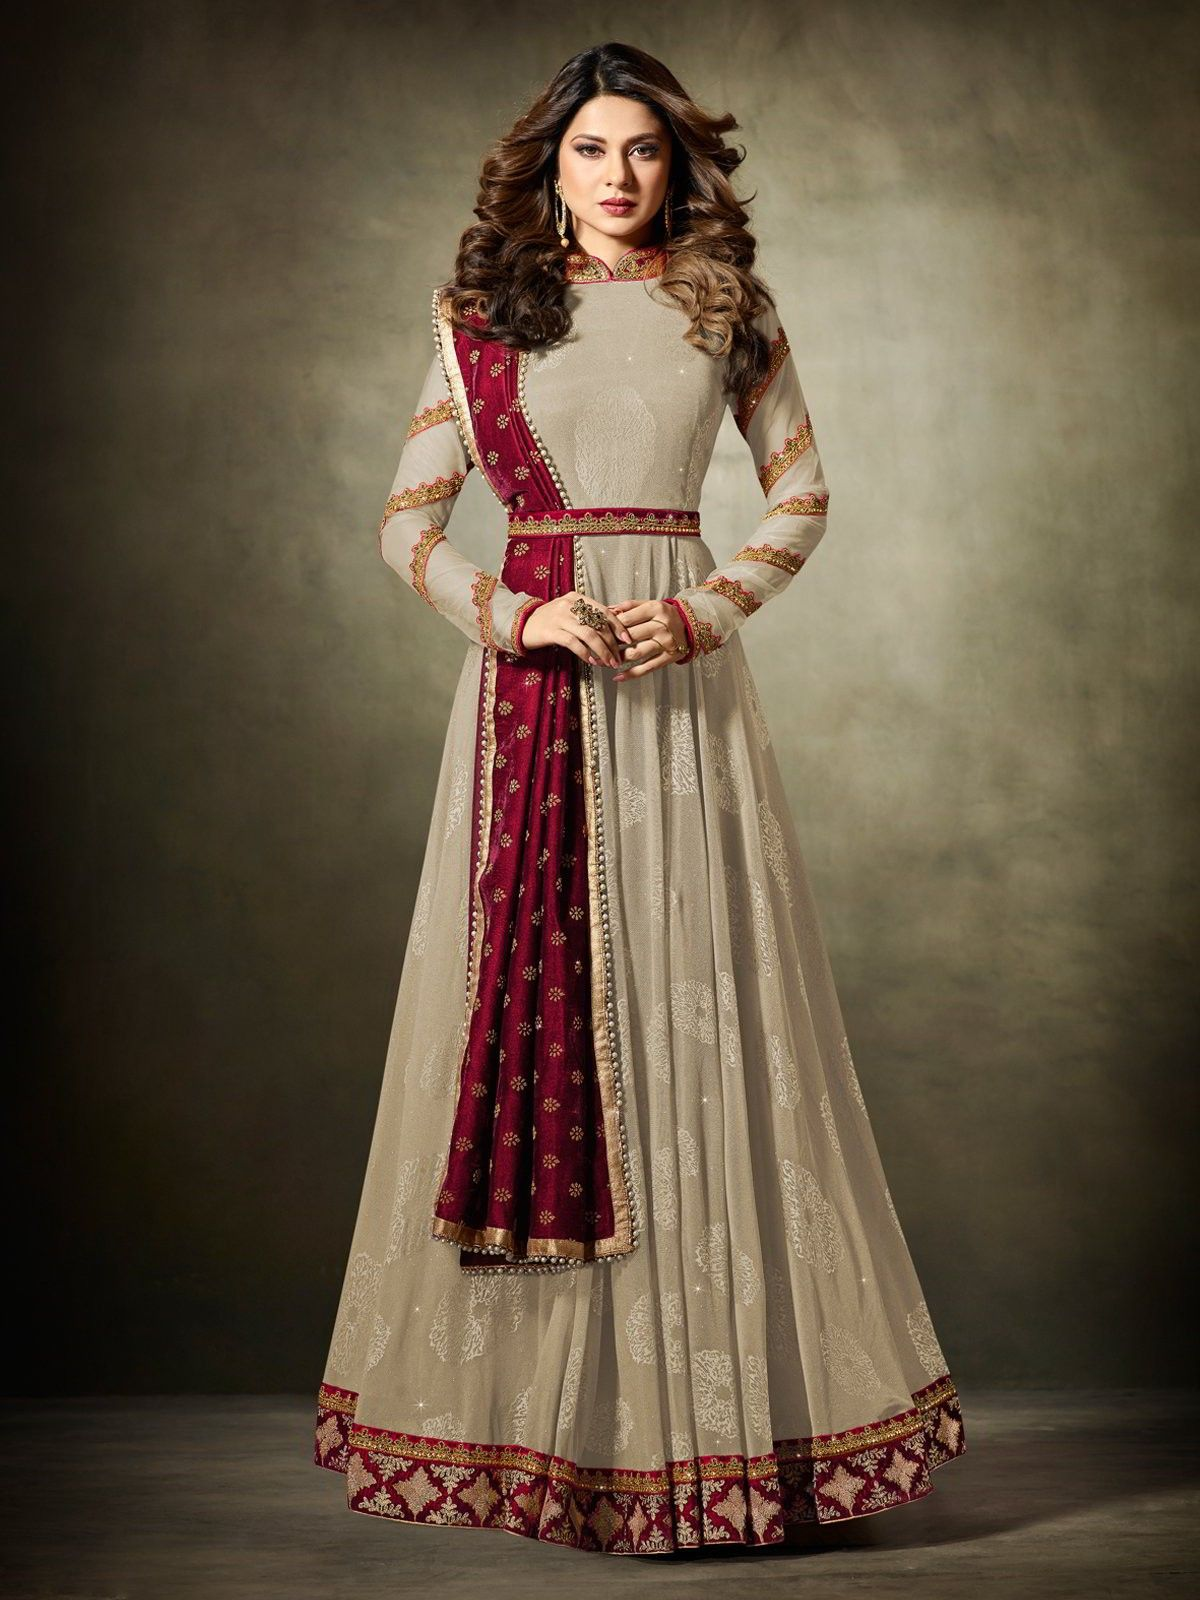 c4e19bc5a1c9 Bollywood diva jennifer winget cream anarkali suit online which is crafted  from net and micro velet fabric with exclusive beadwork